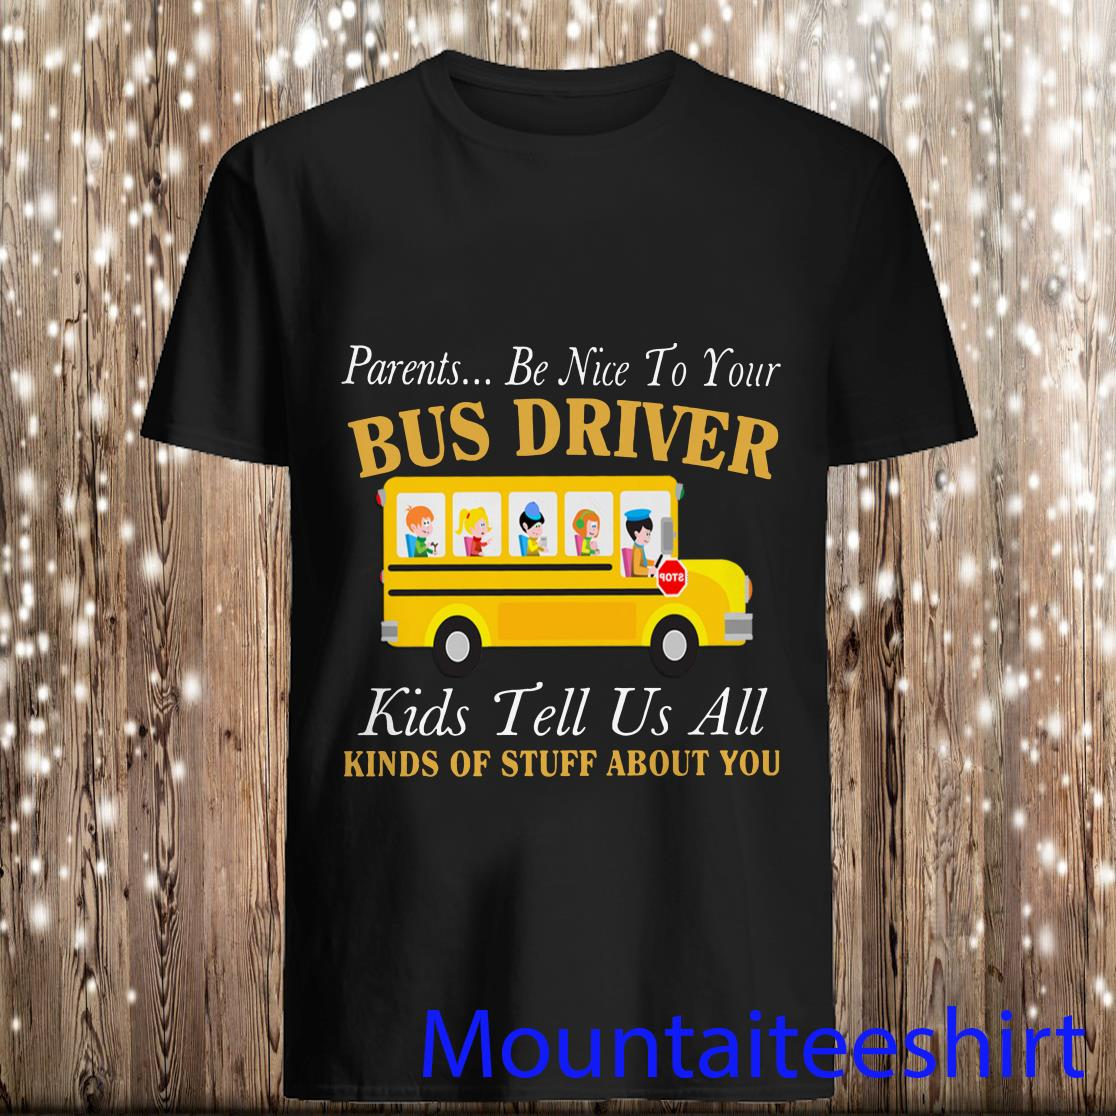 Parents be nice to your bus driver kids tell us all kinds of stuff about you shirt